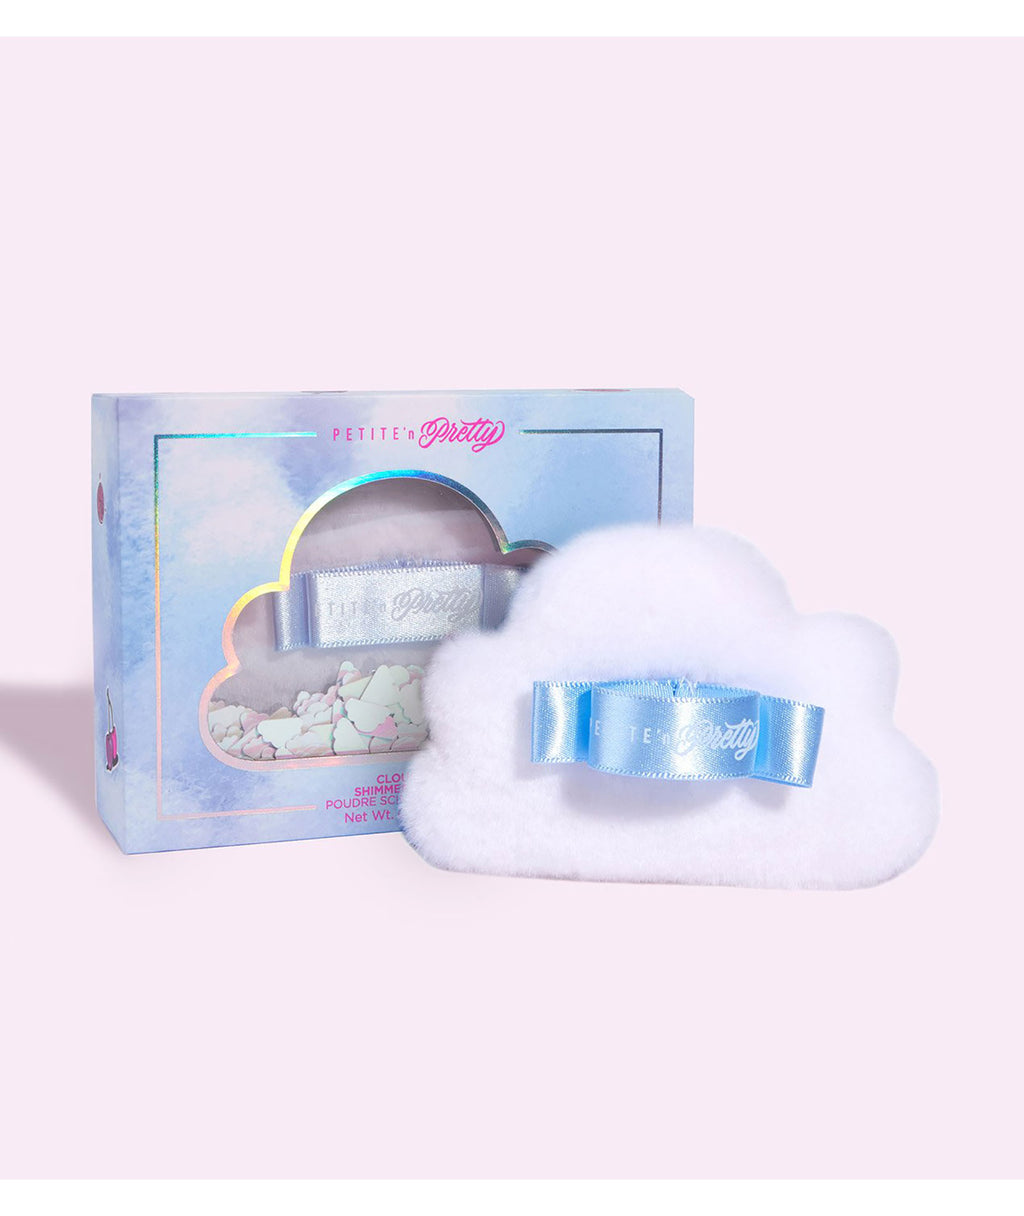 Petite 'n Pretty Cloud Fluff Shimmer Body Puff